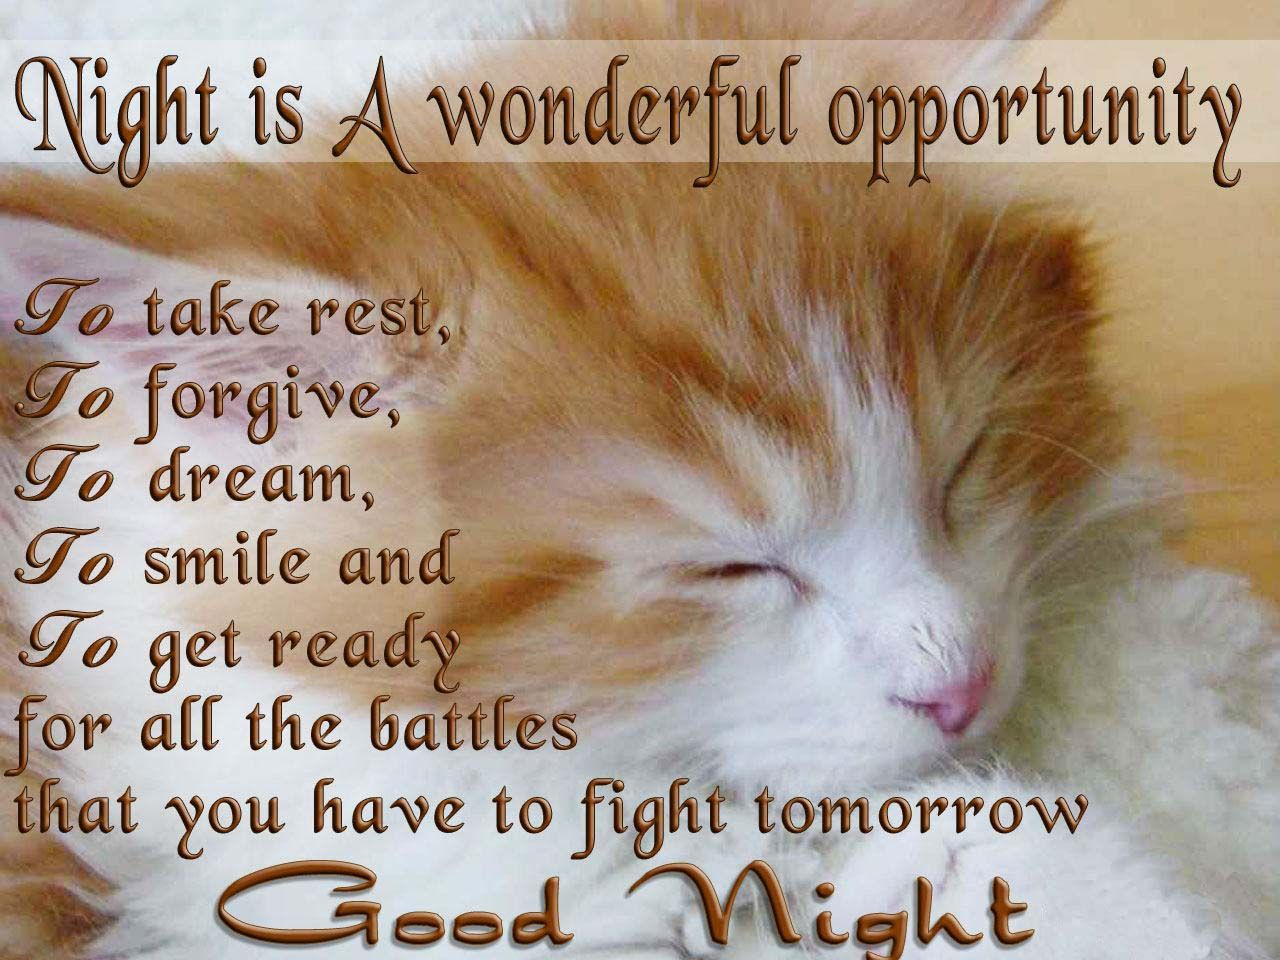 Wish Good Night To Your Friends And Loved Ones With Sweet And Short